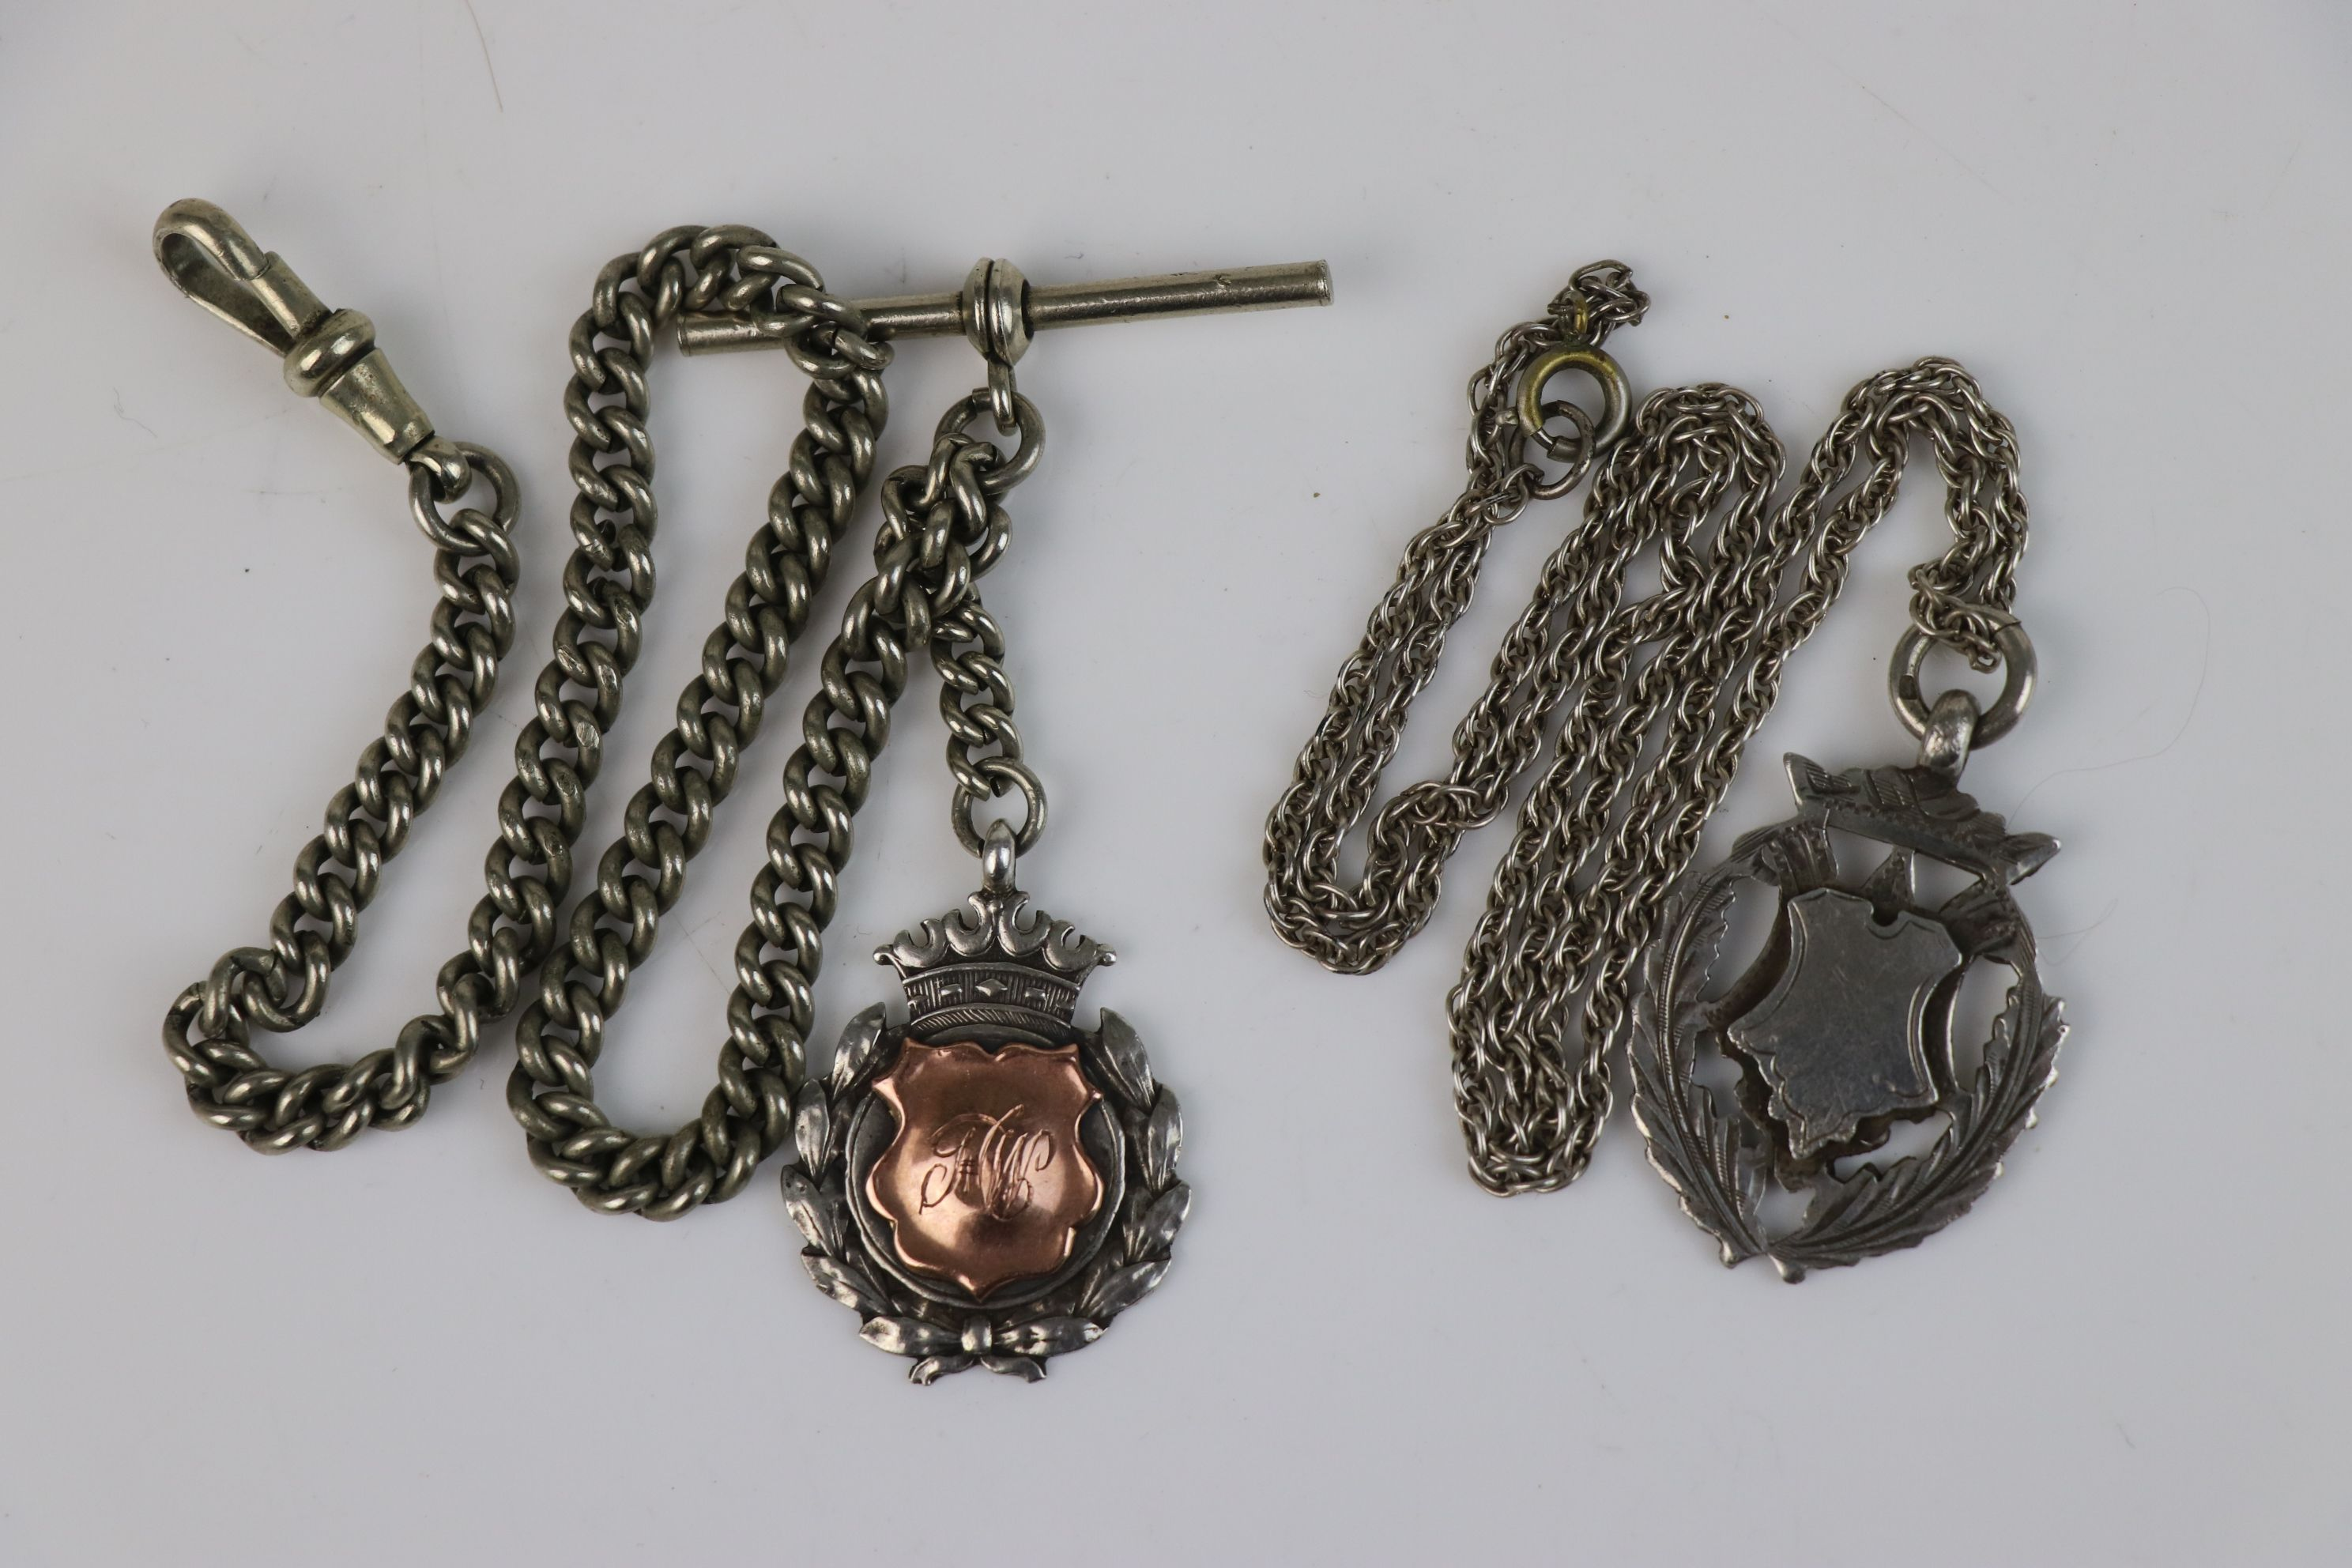 Two fully hallmarked sterling silver watch fob medallions together with an Albert chain.